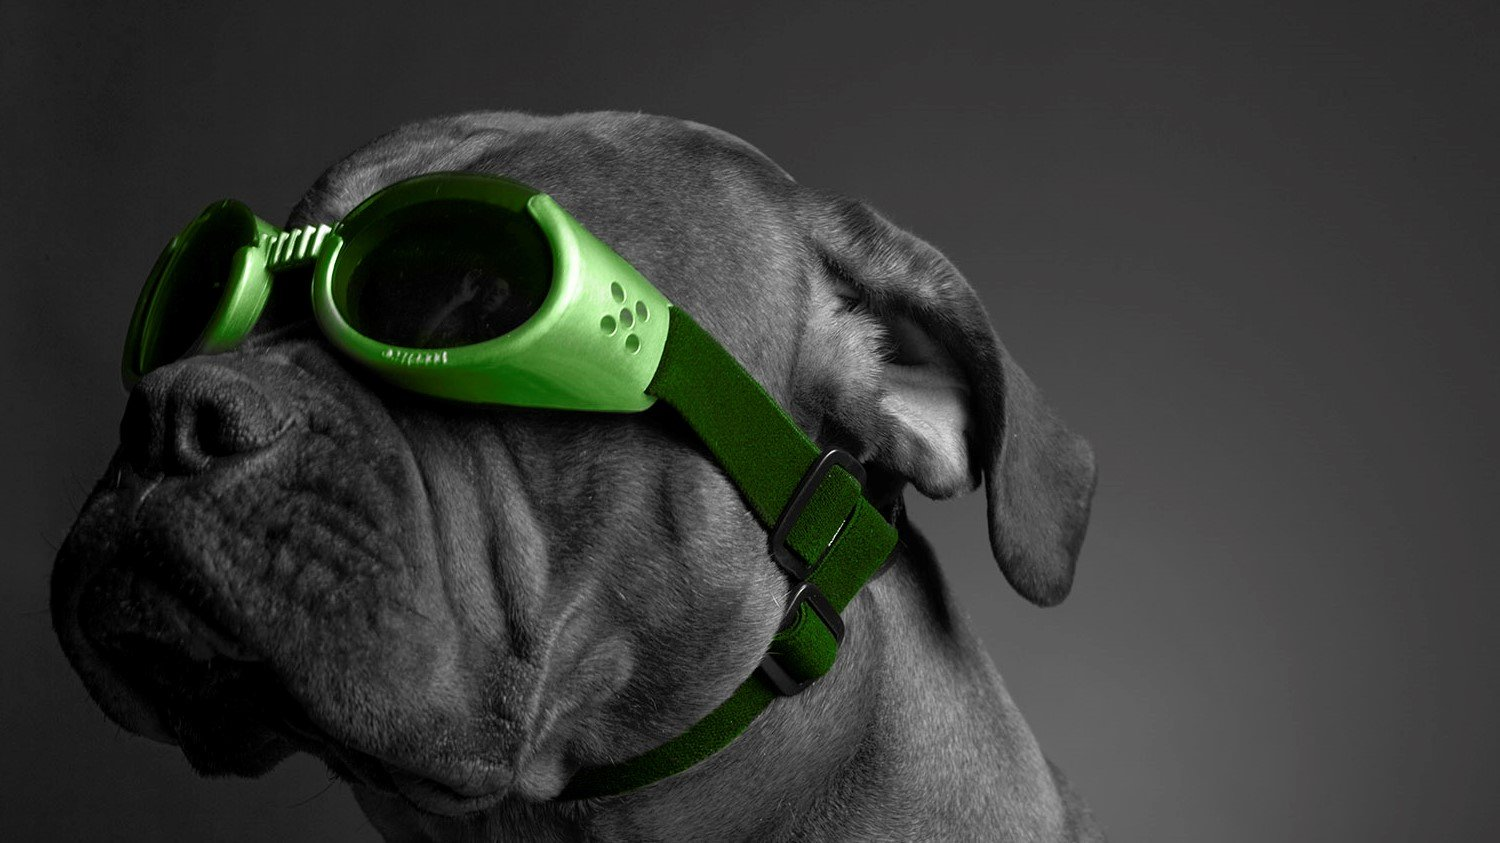 Dog-Goggles Pic widescreen